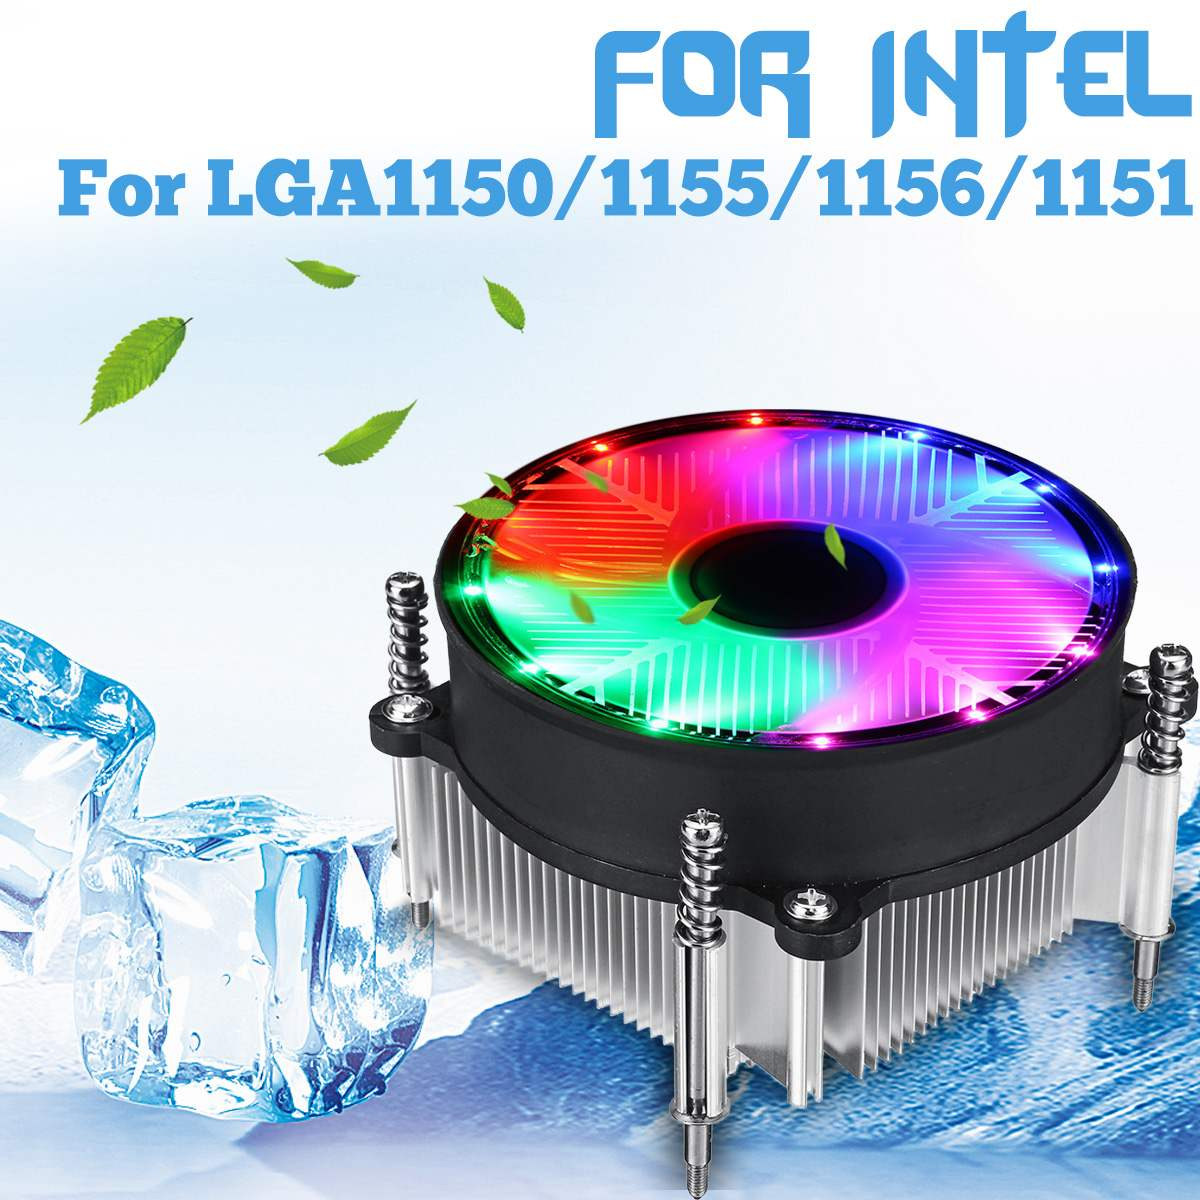 CPU <font><b>Cooler</b></font> Cooling Fan for Intel LED Silence 3Pin Fan Radiator Heatsink <font><b>Cooler</b></font> Support for Intel 115X Series 1150 1155 <font><b>1156</b></font> 1151 image